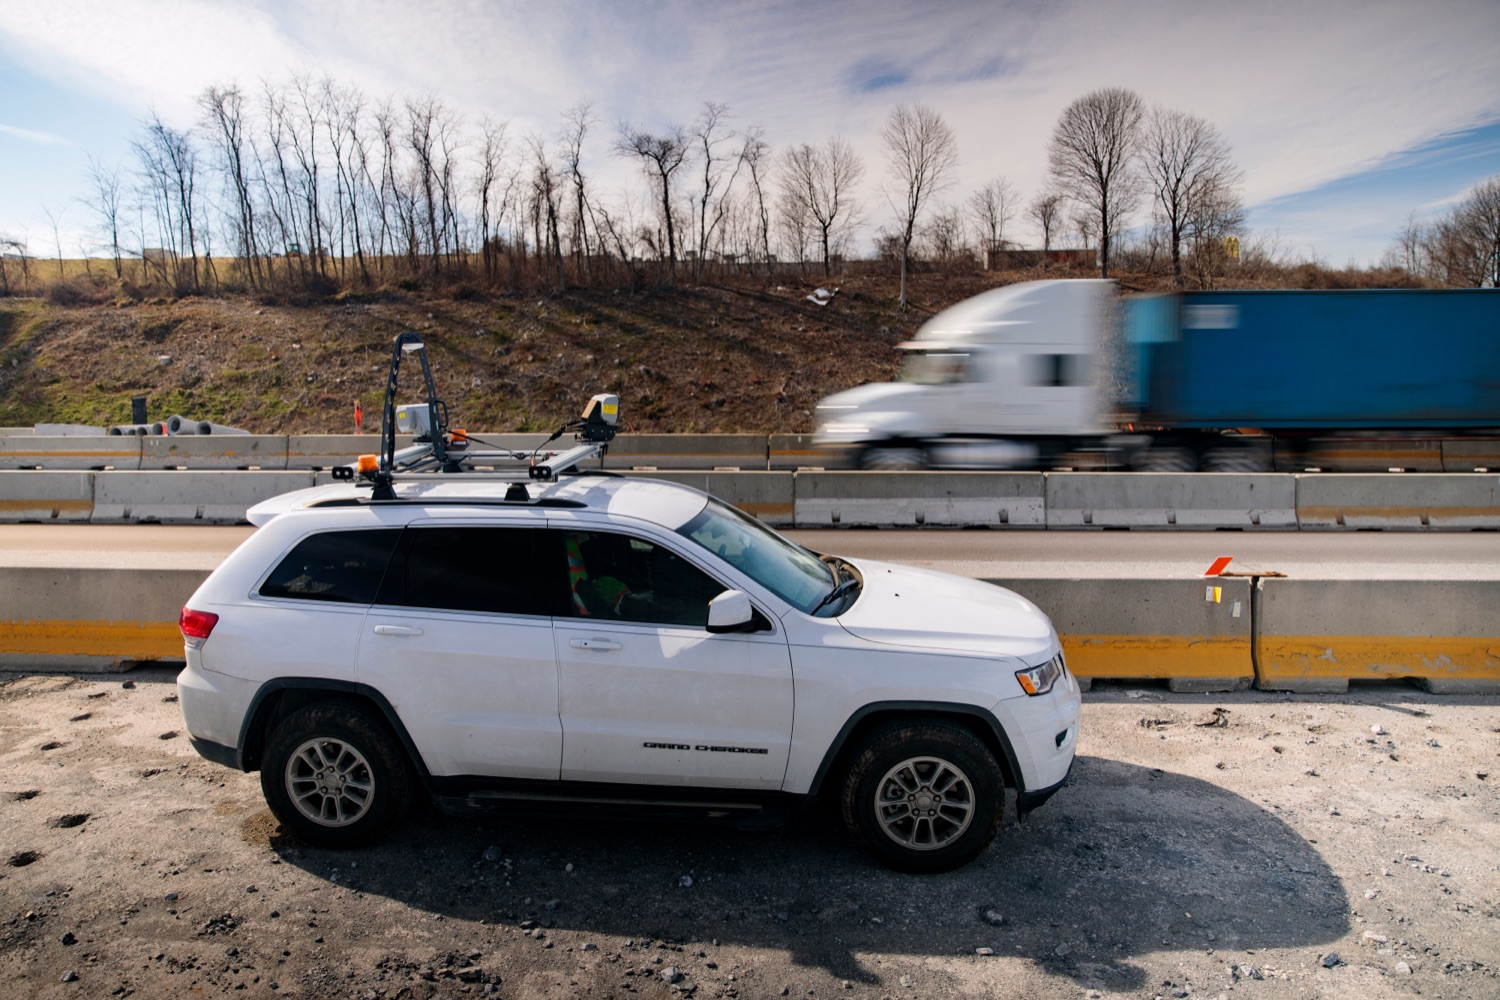 """<a href=""""https://filesource.wostreaming.net/commonwealthofpa/photo/17774_PennDOT_AWZSE_NK_003.JPG"""" target=""""_blank"""">⇣Download Photo<br></a>Pennsylvanias AWZSE program uses vehicle-mounted systems to detect and record motorists exceeding posted work zone speed limits by 11 miles per hour or more using electronic speed timing devices. AWZSE systems are only operational in active work zones where workers are present. Beginning today, registered owners will receive a warning letter for a first offense, a violation notice and $75 fine for a second offense, and a violation notice and $150 fine for third and subsequent offenses. These violations are civil penalties only; no points will be assessed to drivers licenses."""